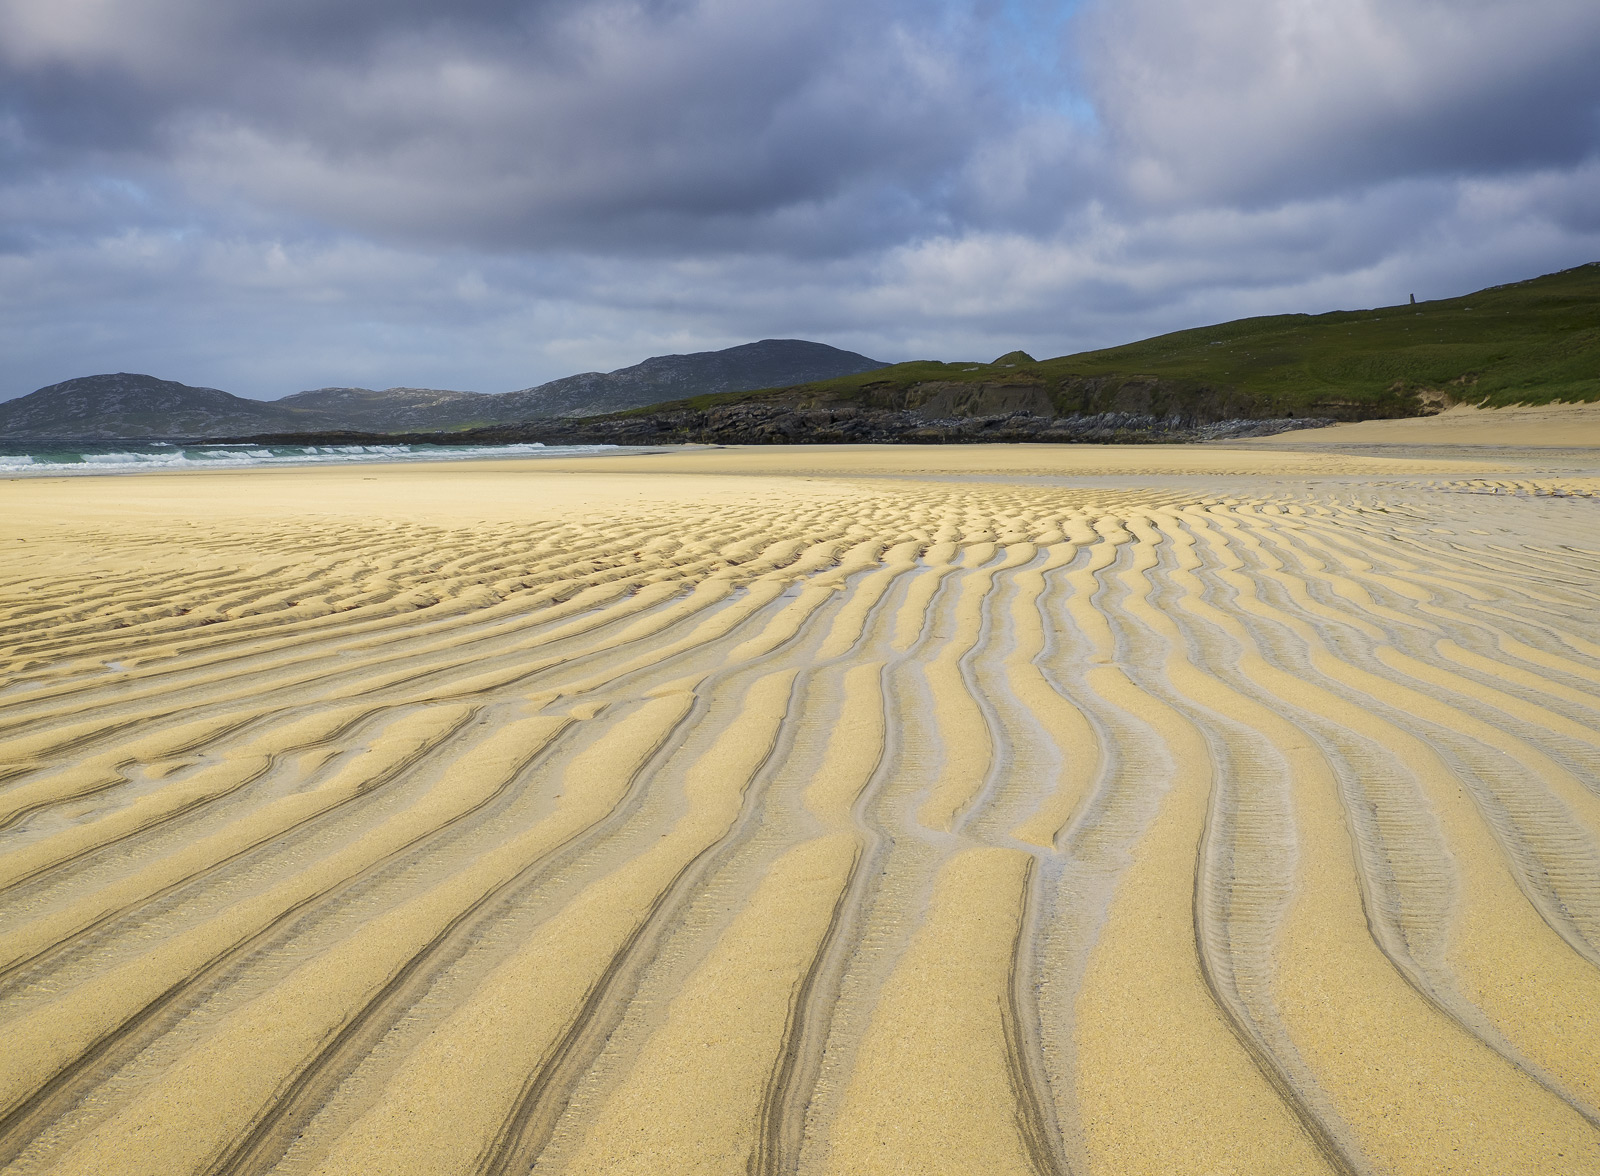 A coarse grain sand beach like the ones found on Harris's west coast tend to form substantial grooves when the tide pulls out...